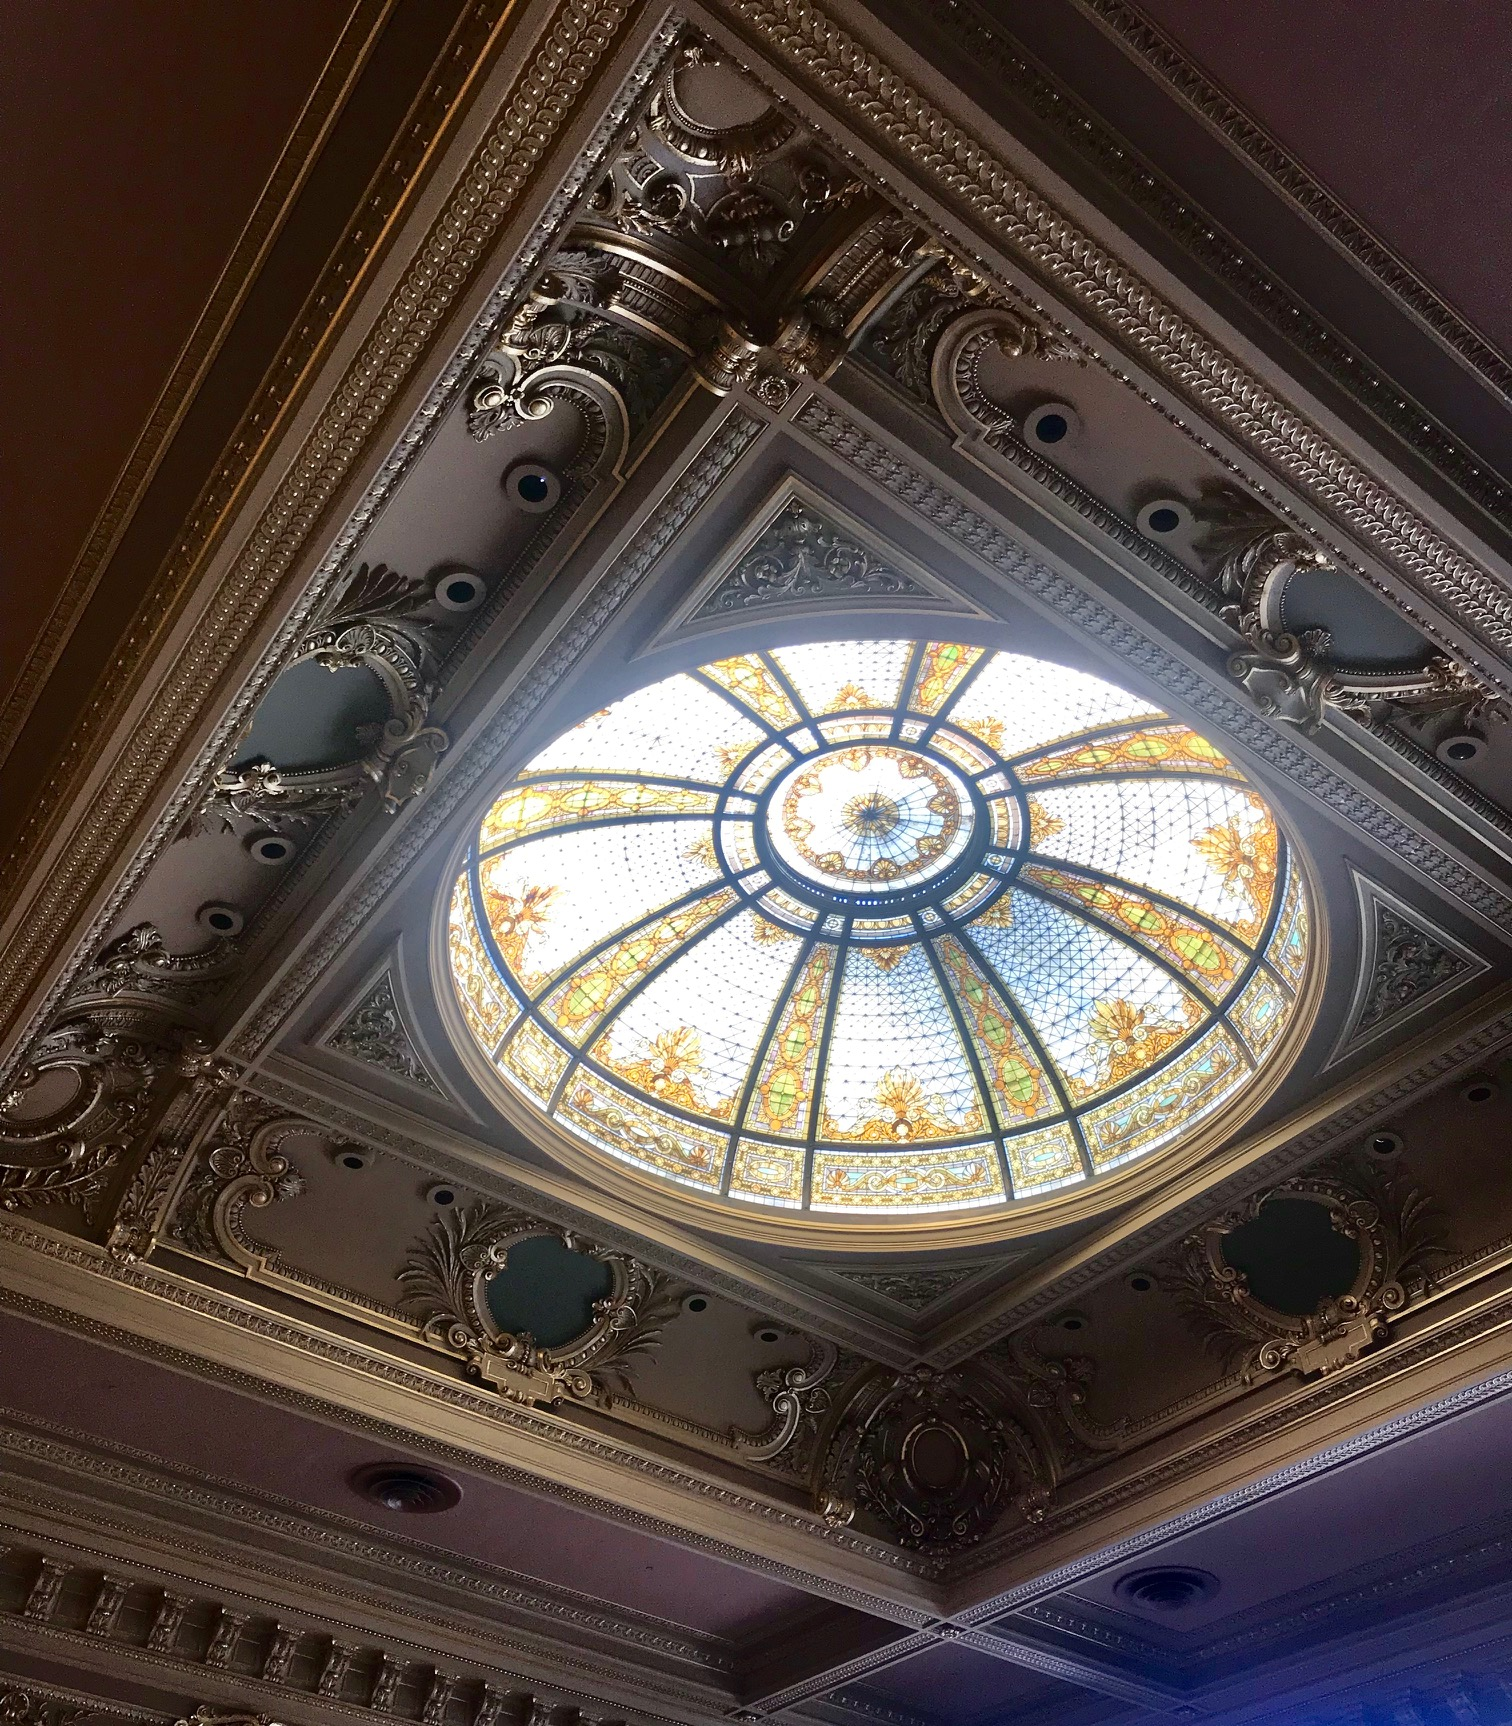 Ornate stain-glass dome